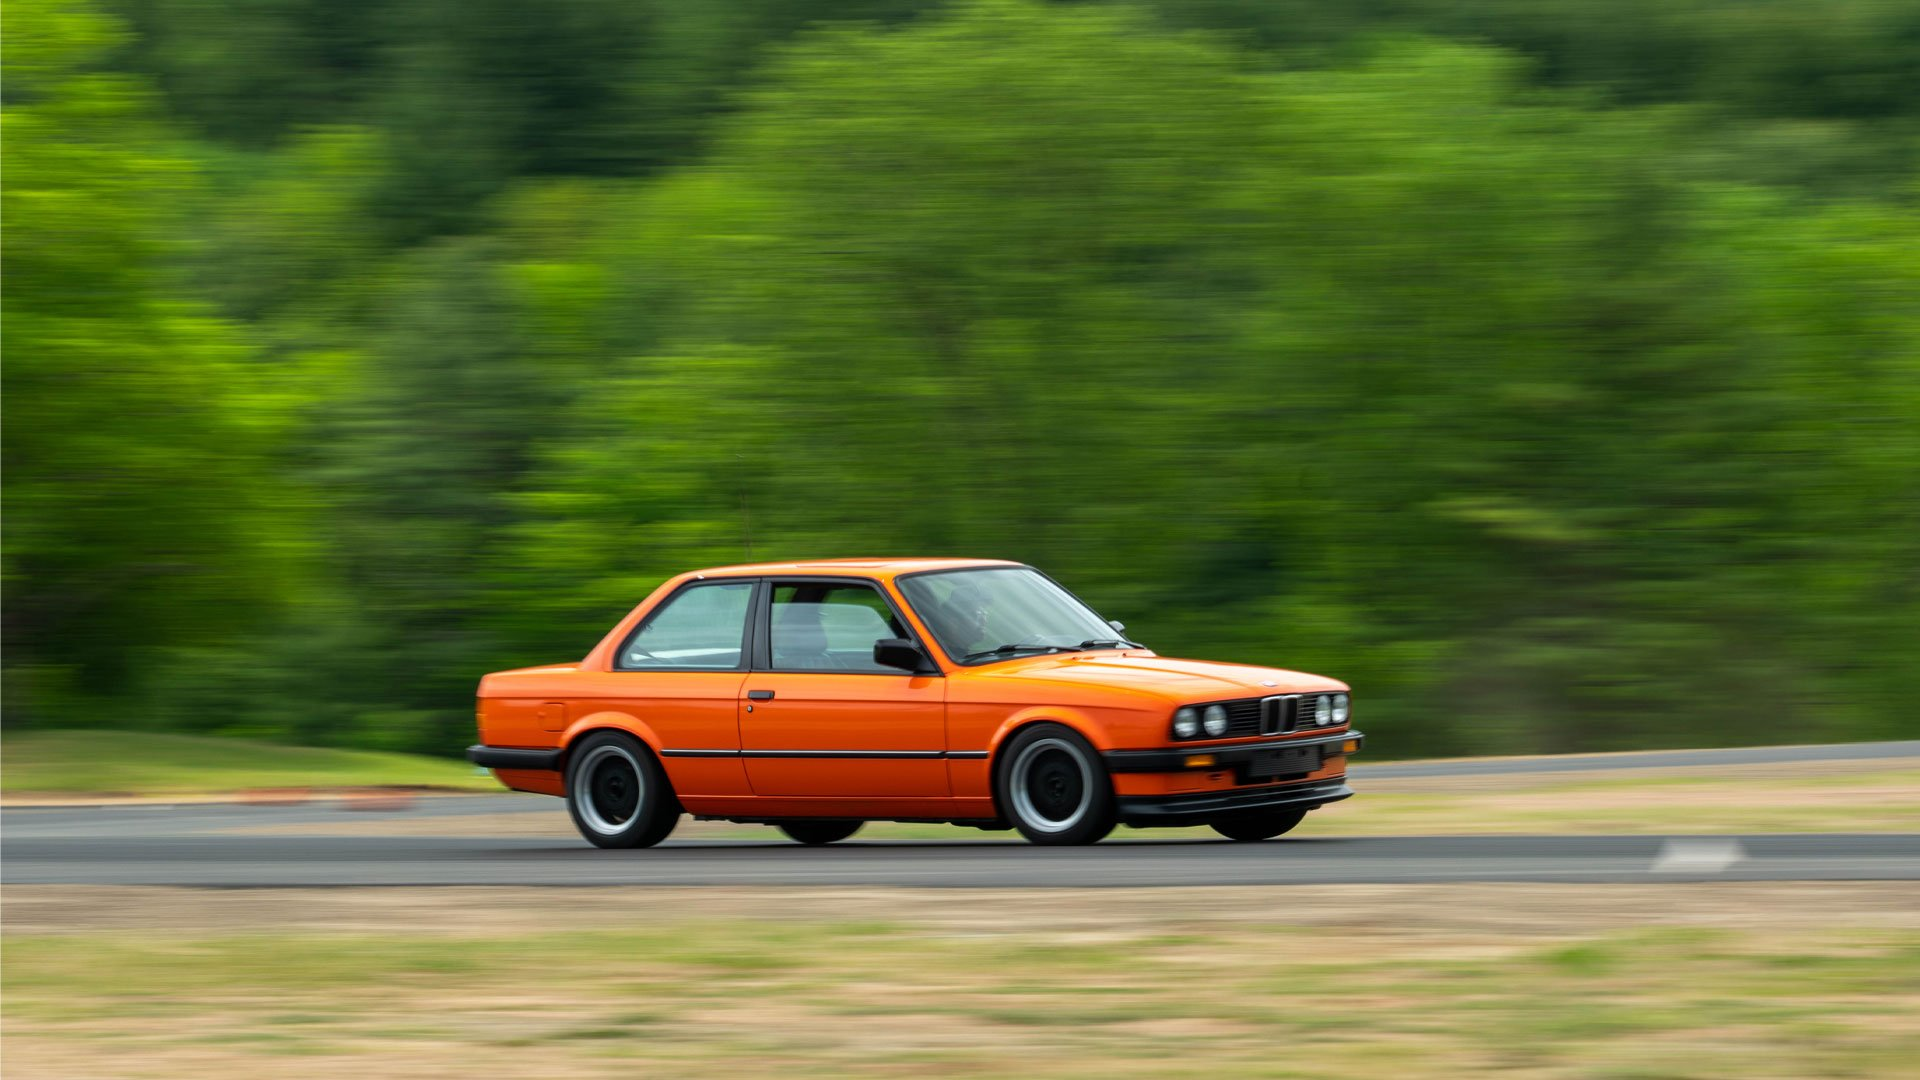 lrp-fcpeuro-proving-grounds-bmw-e30